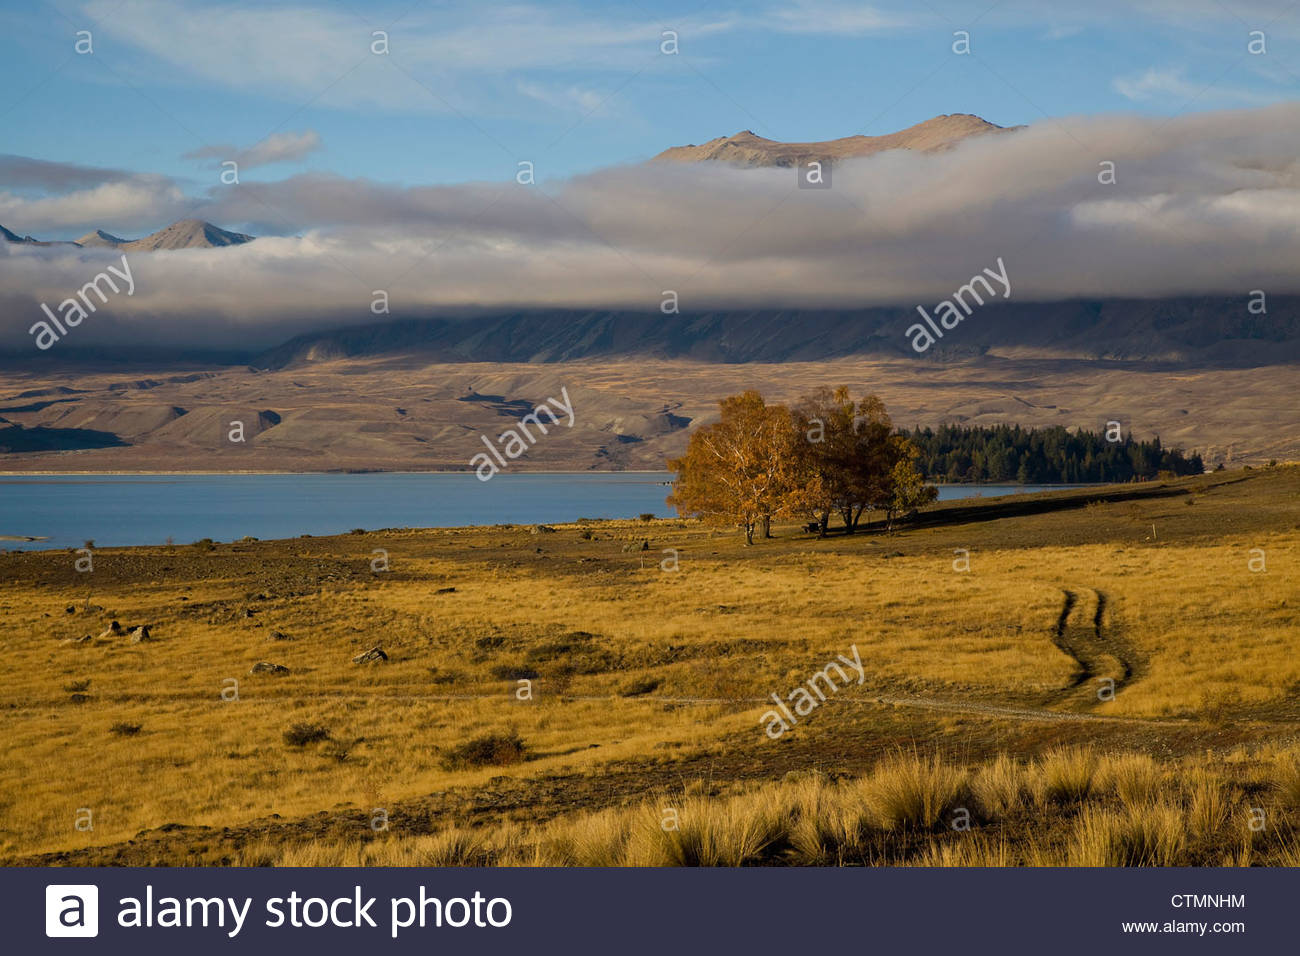 The warm colours of autumn are enhanced by the late afternoon sun near Lake Tekapo, Otago, South Island, New Zealand - Stock Image